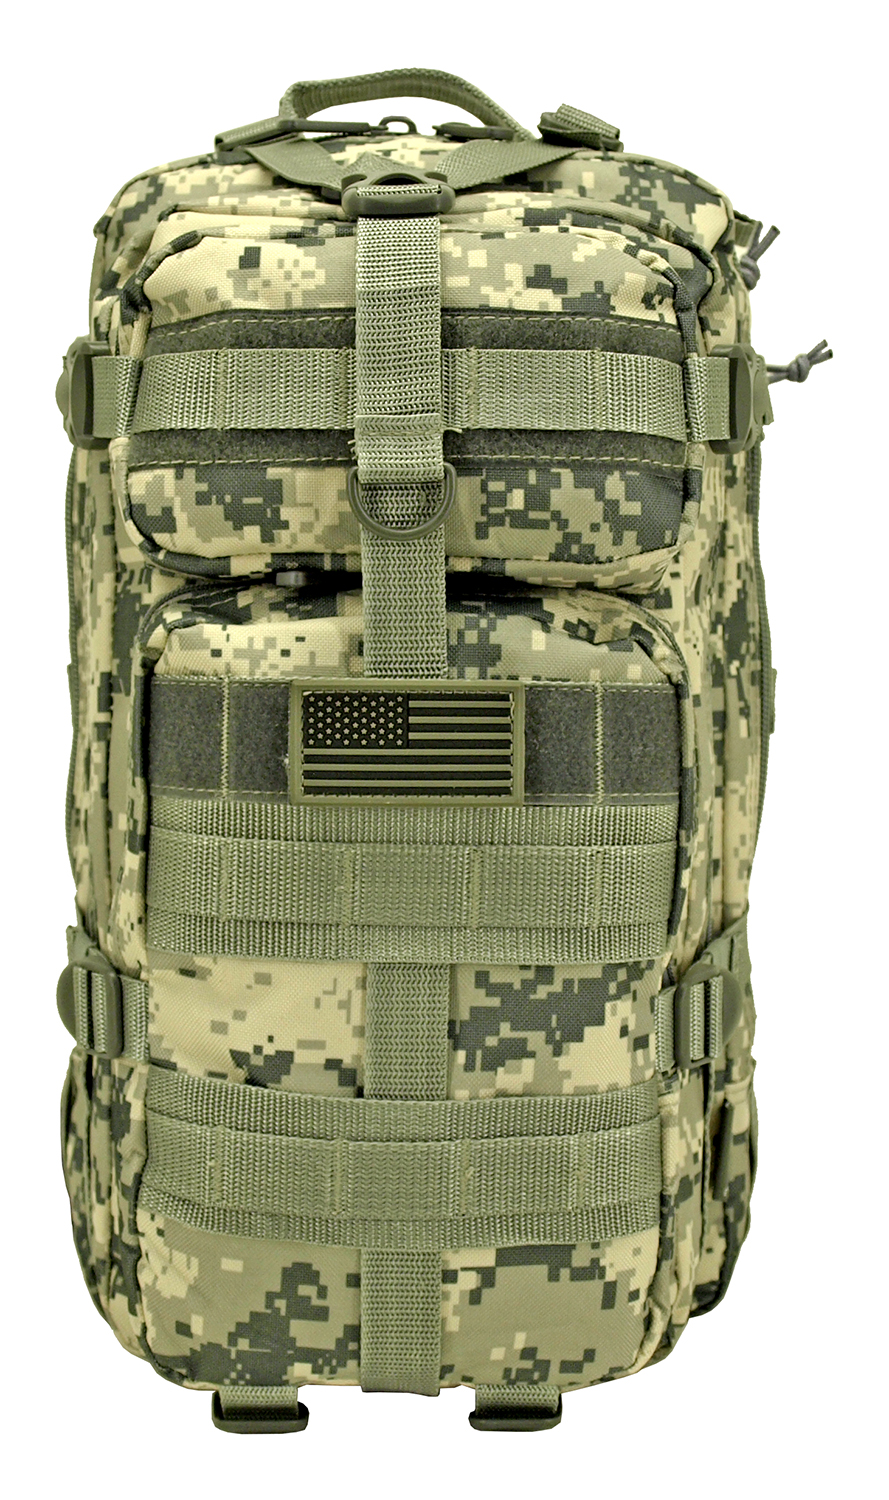 Sortie Mission Pack Backpack - Digital Camo